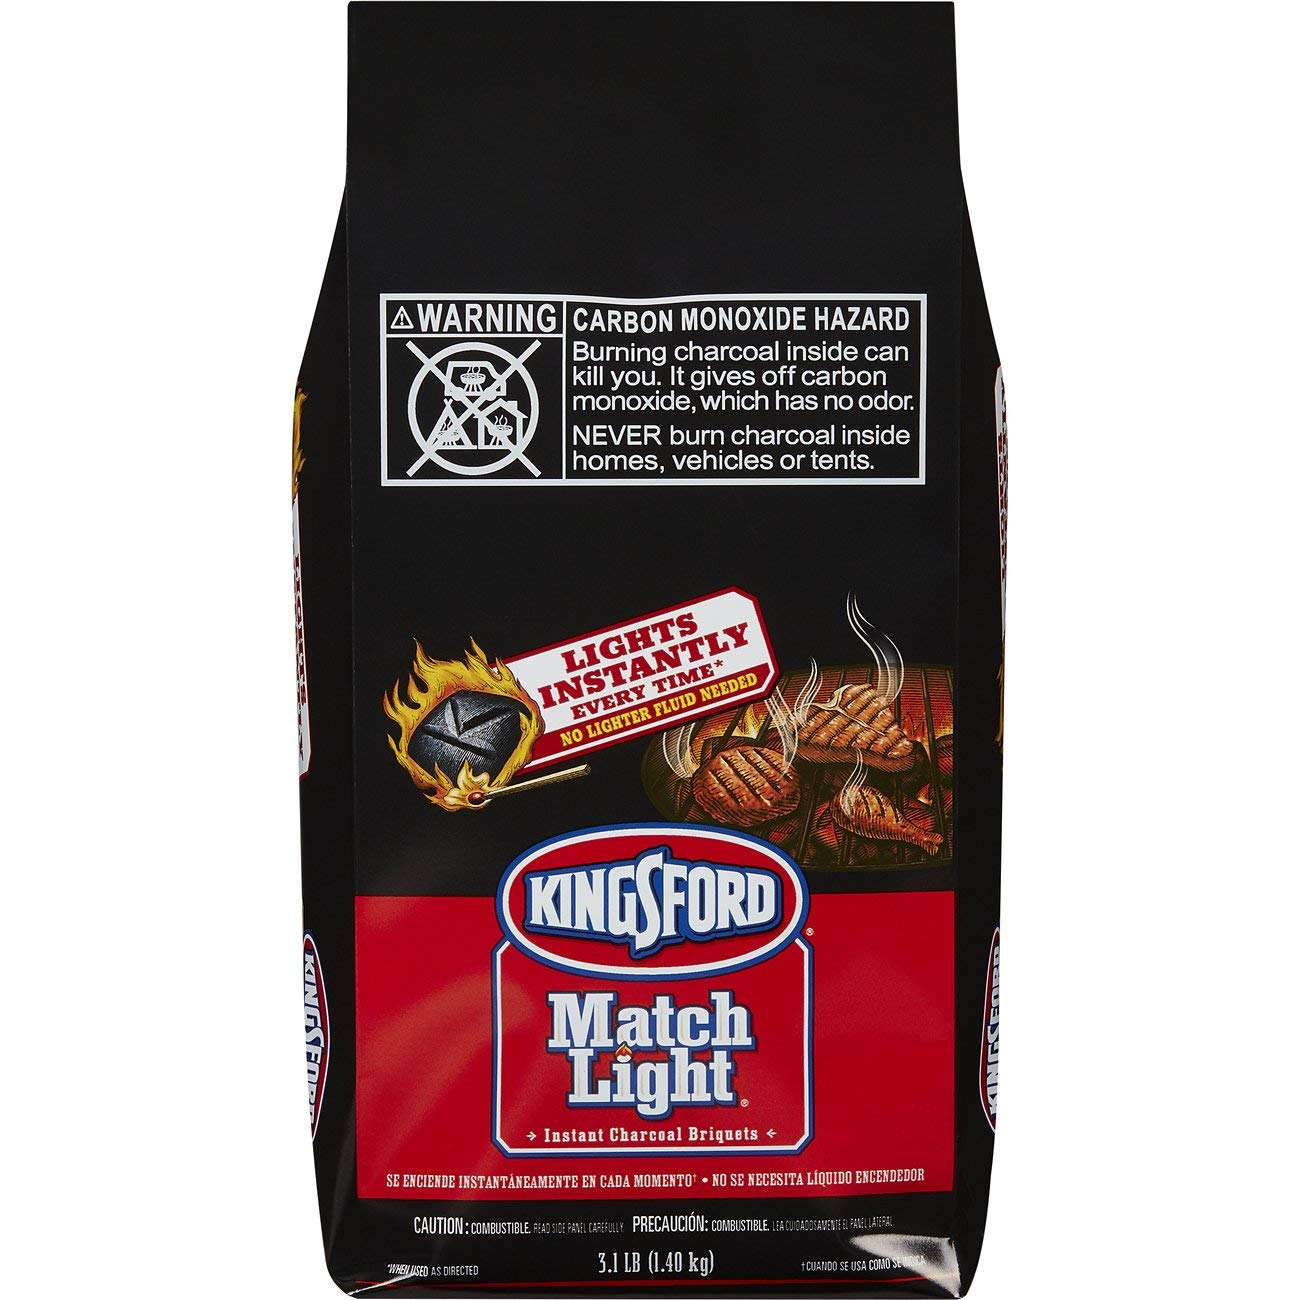 Kingsford Match Light Instant Charcoal Briquettes, 3.1 Pounds (Pack of 6) by Matchlight